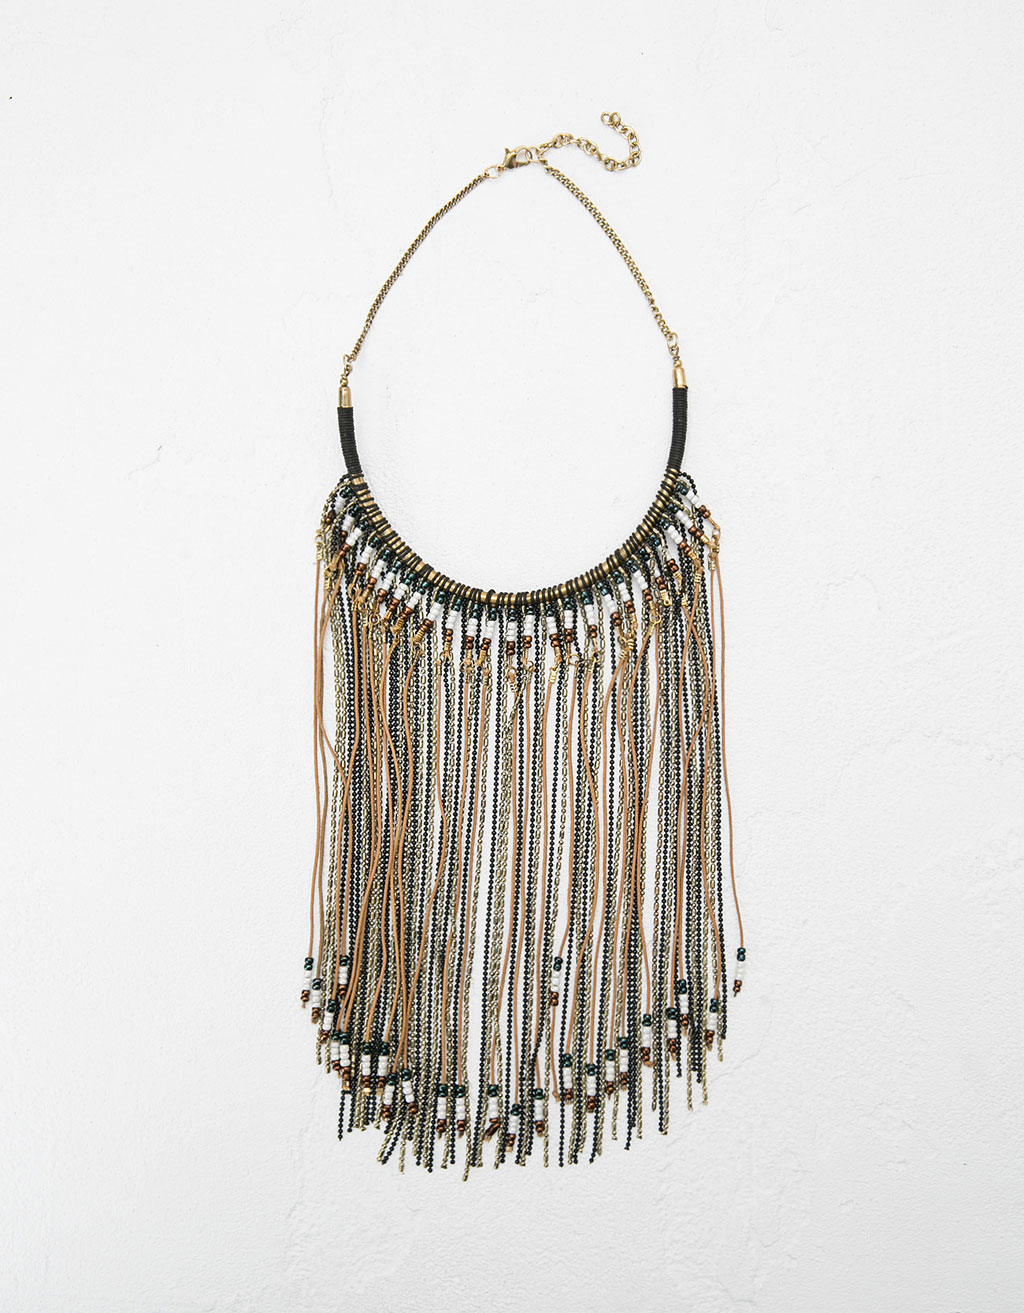 Fringe and beads necklace